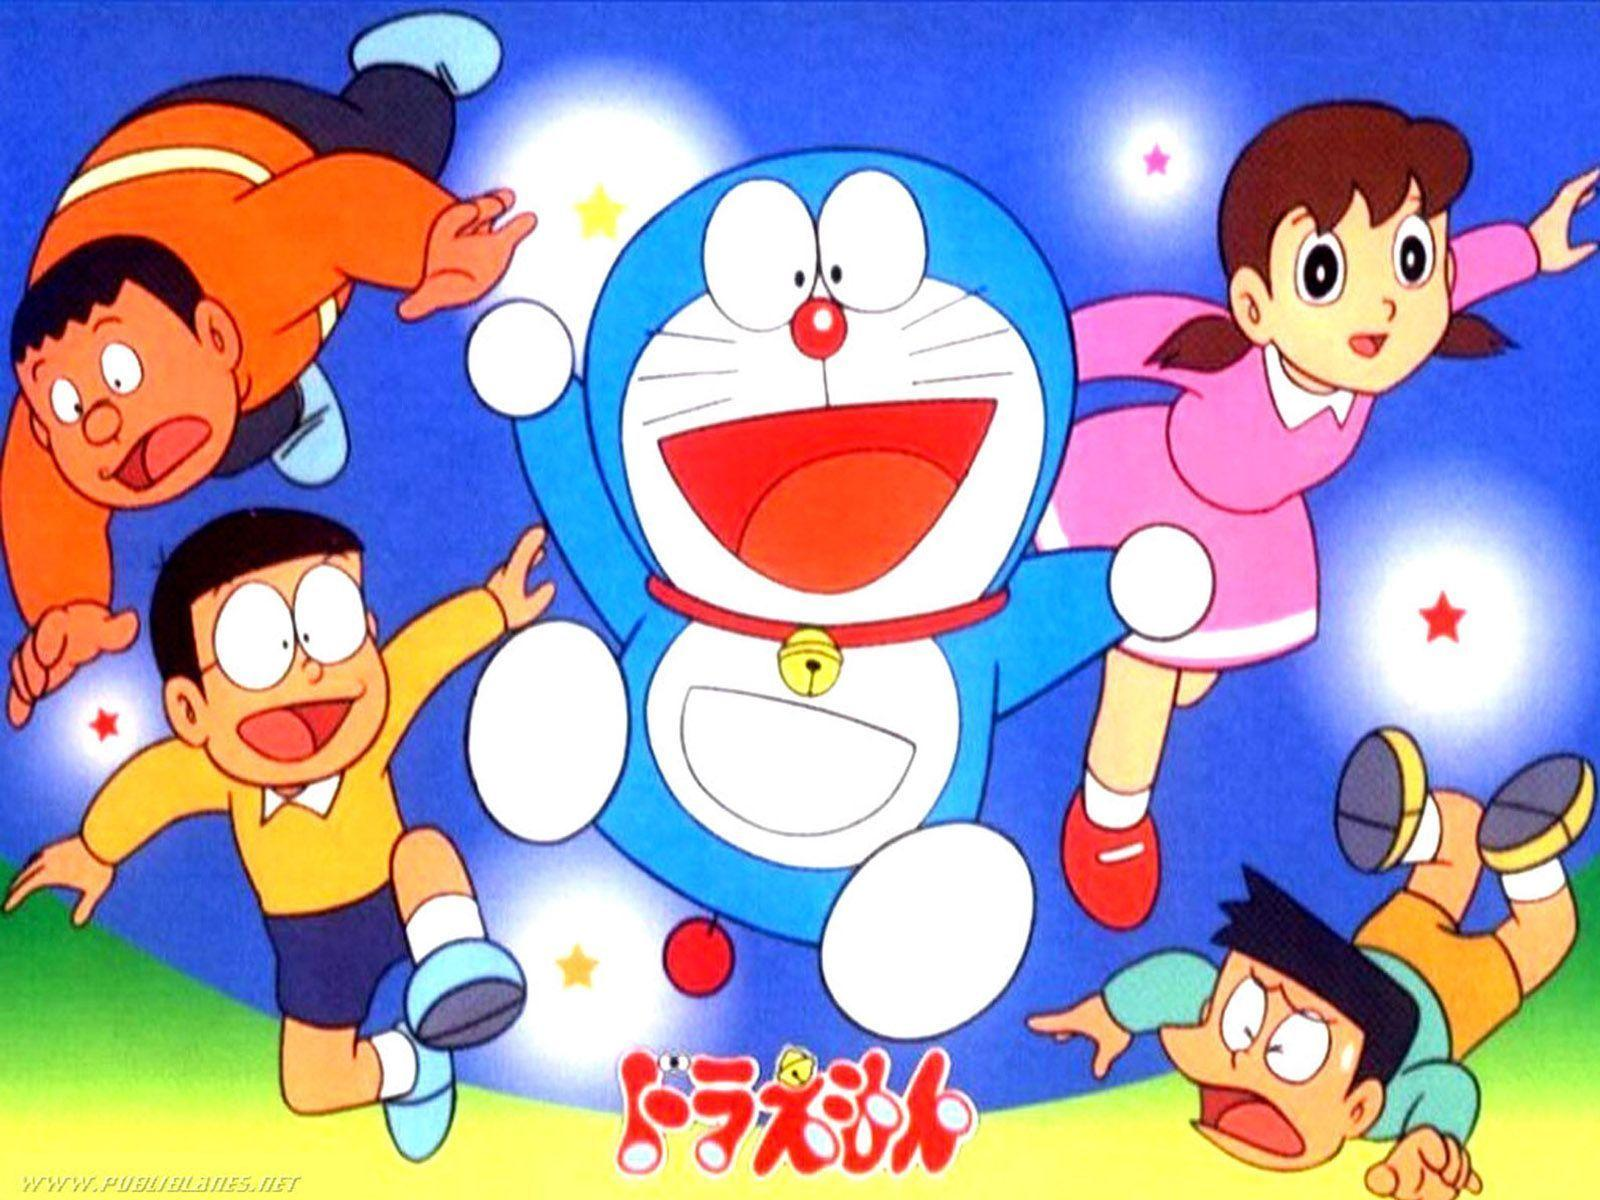 Doraemon And Friends Wallpapers 2015 - Wallpaper Cave